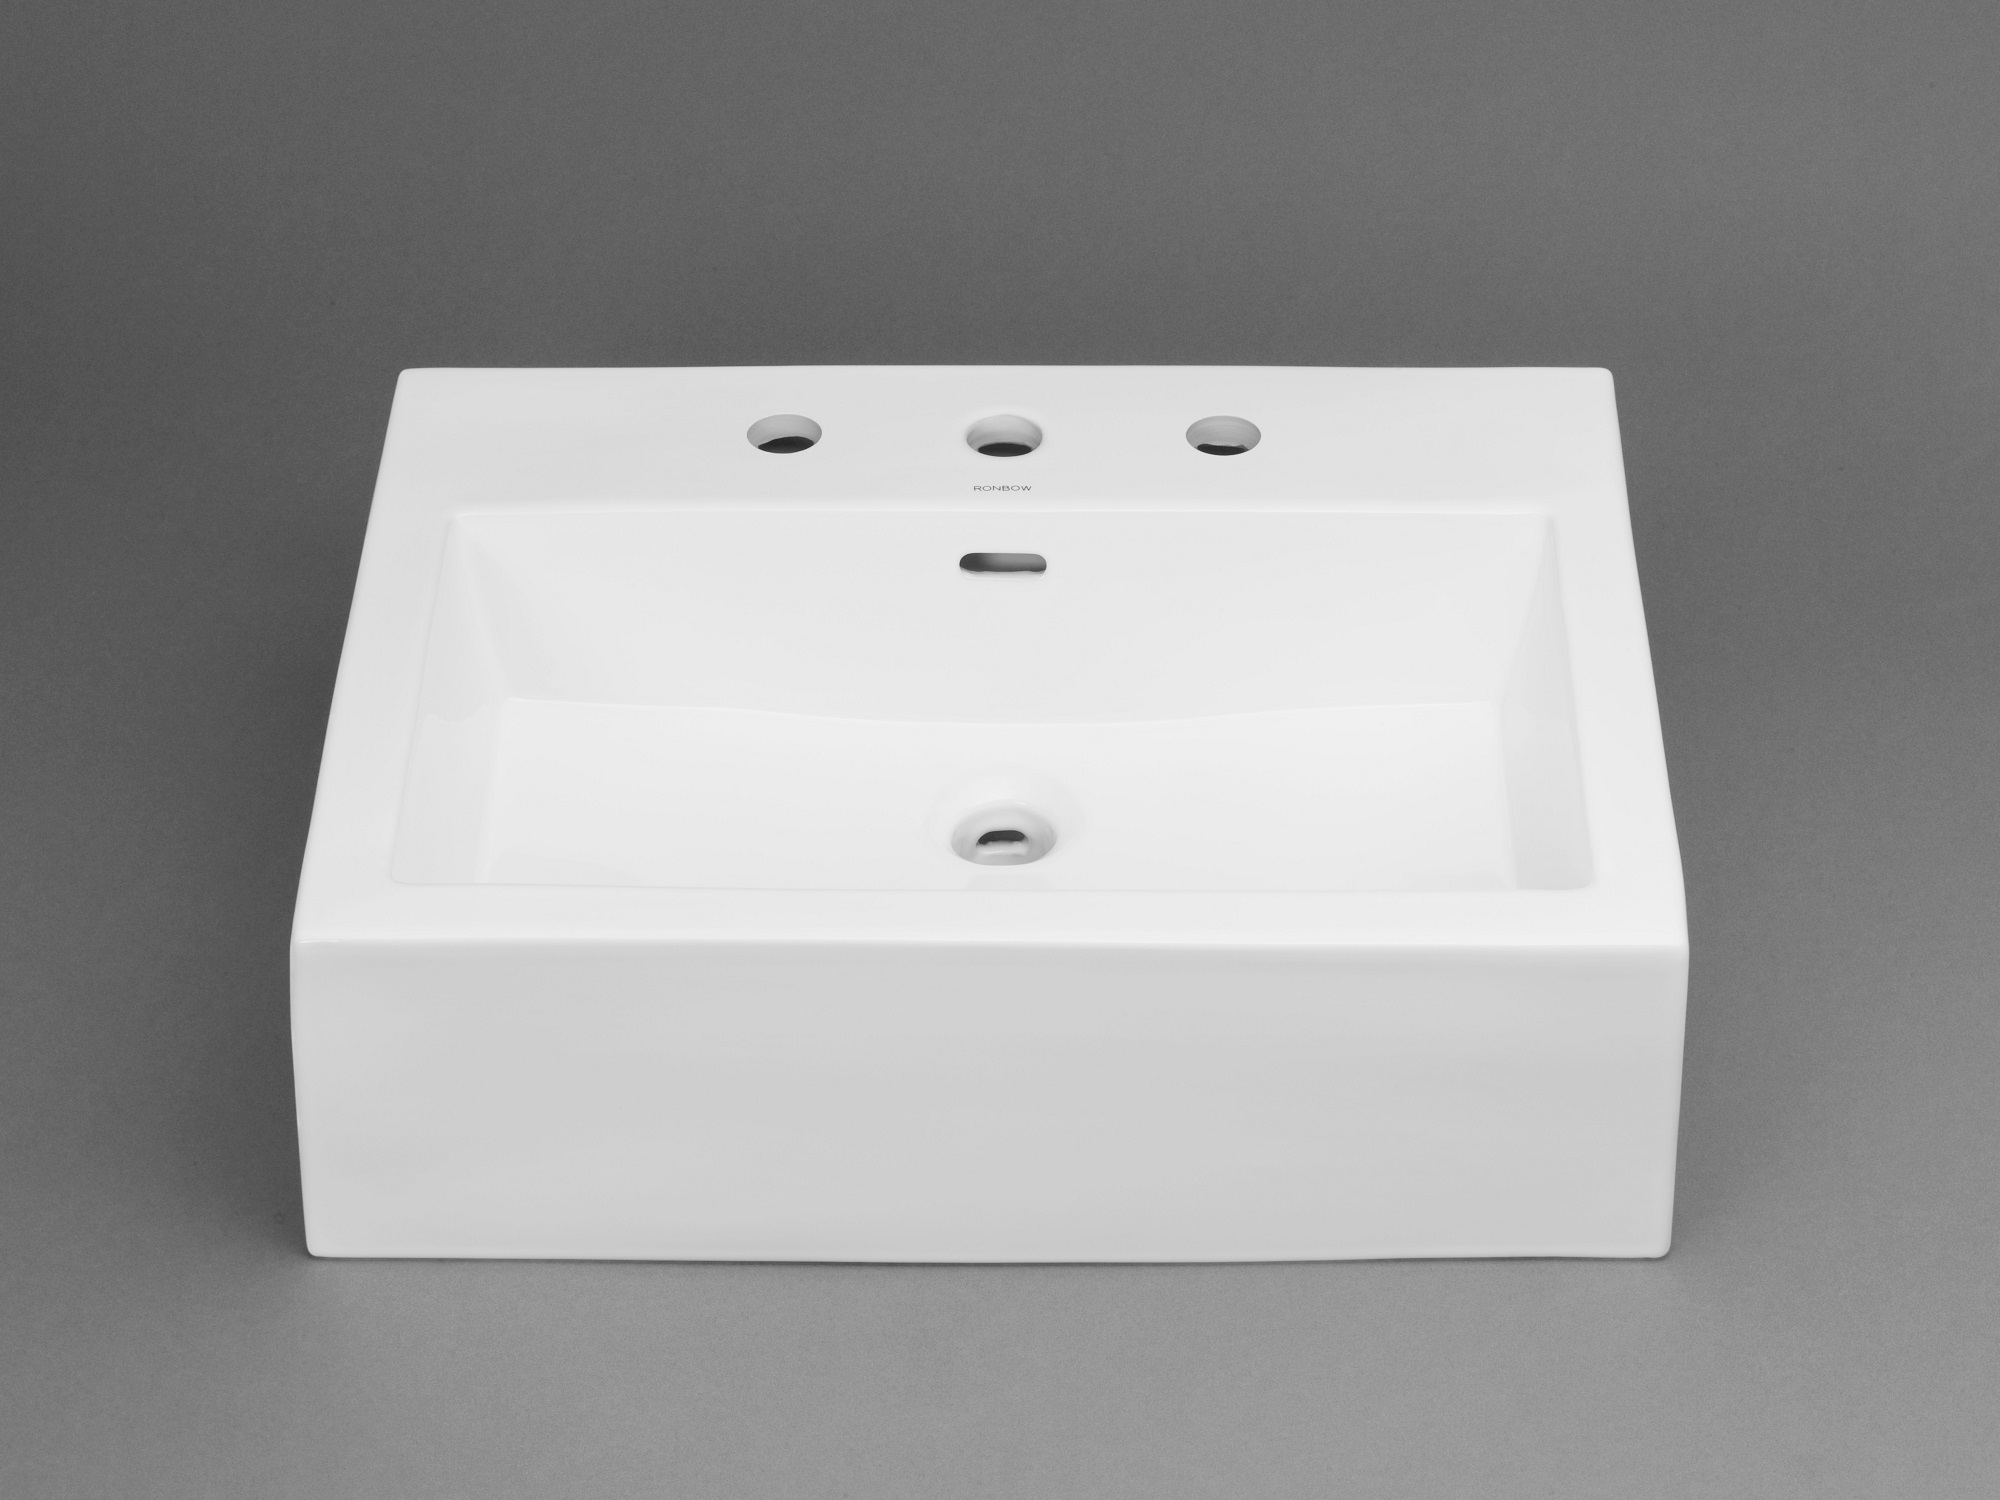 "Ronbow Prominent? 32"" Ceramic Sinktop with 8"" Widespread Faucet Hole in White"